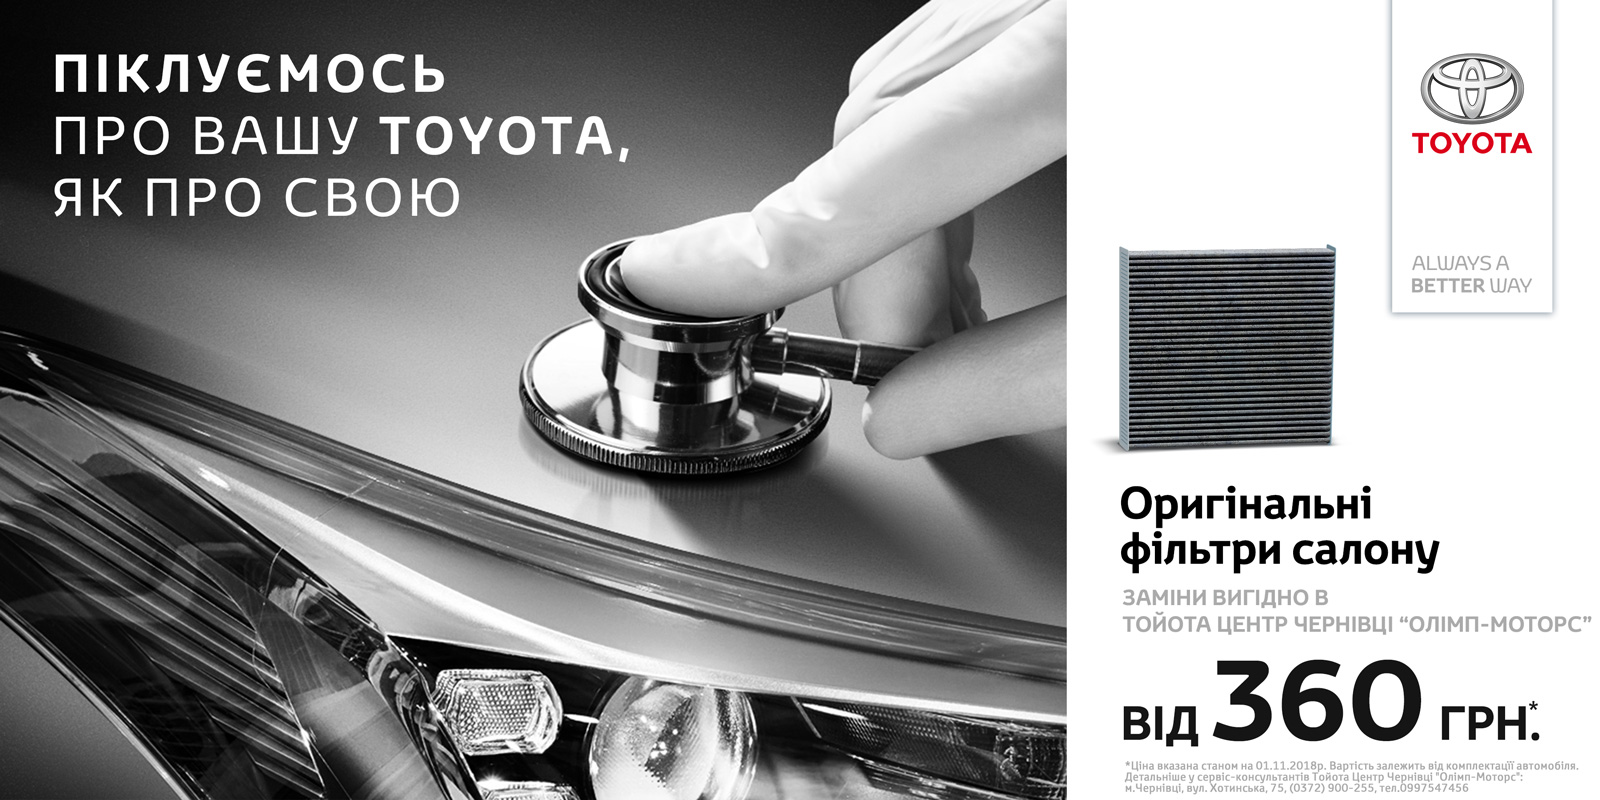 toyota_offservice_6x3_stetho_2_product_filters